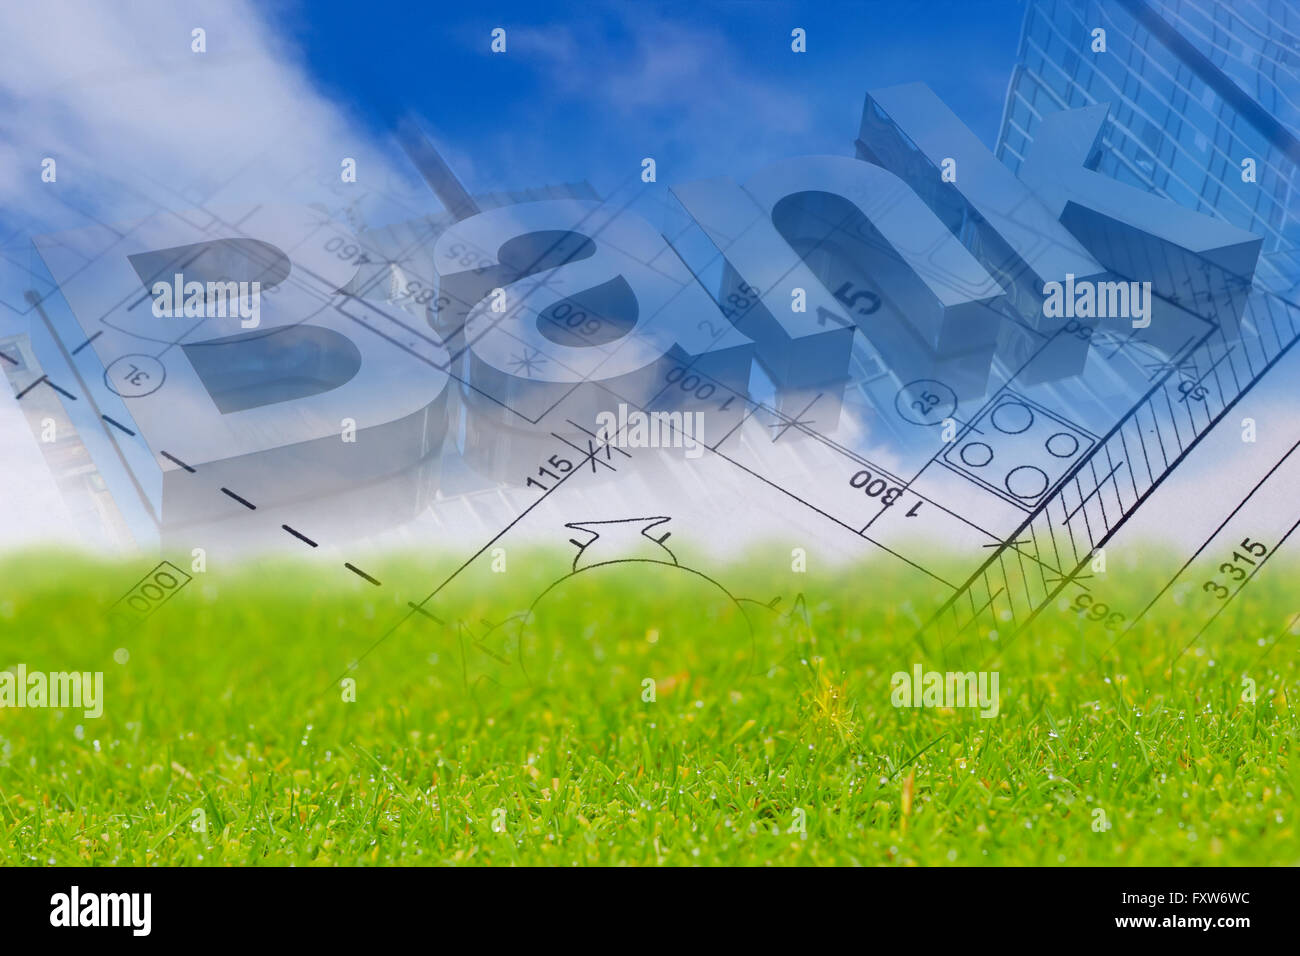 Background with blue sky green land blueprint of a house and bank background with blue sky green land blueprint of a house and bank sign malvernweather Choice Image